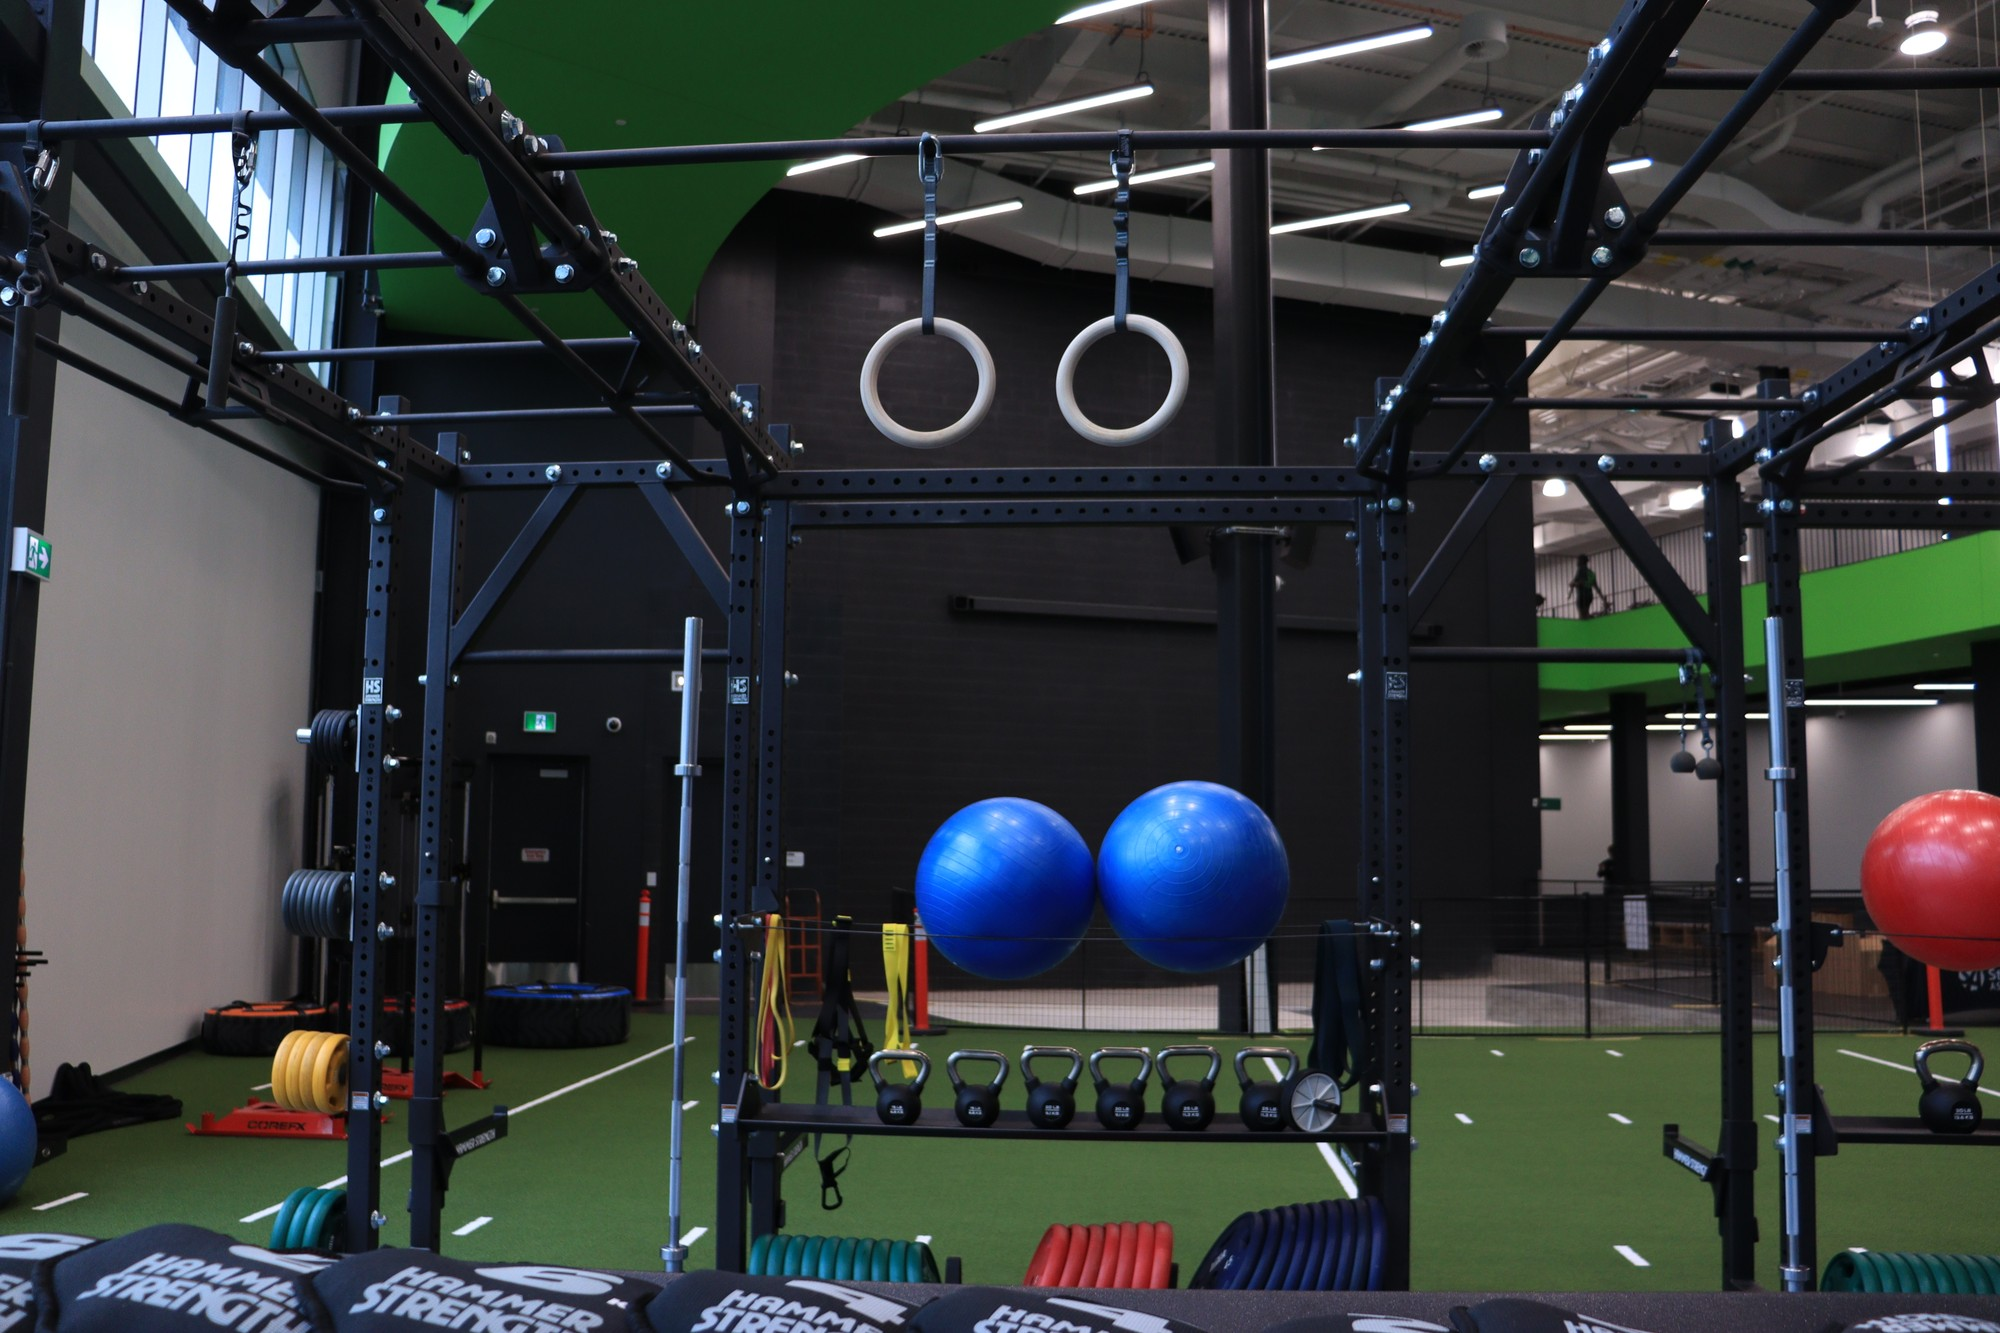 Some of the available weights, with exercise balls, tension ropes and much more.